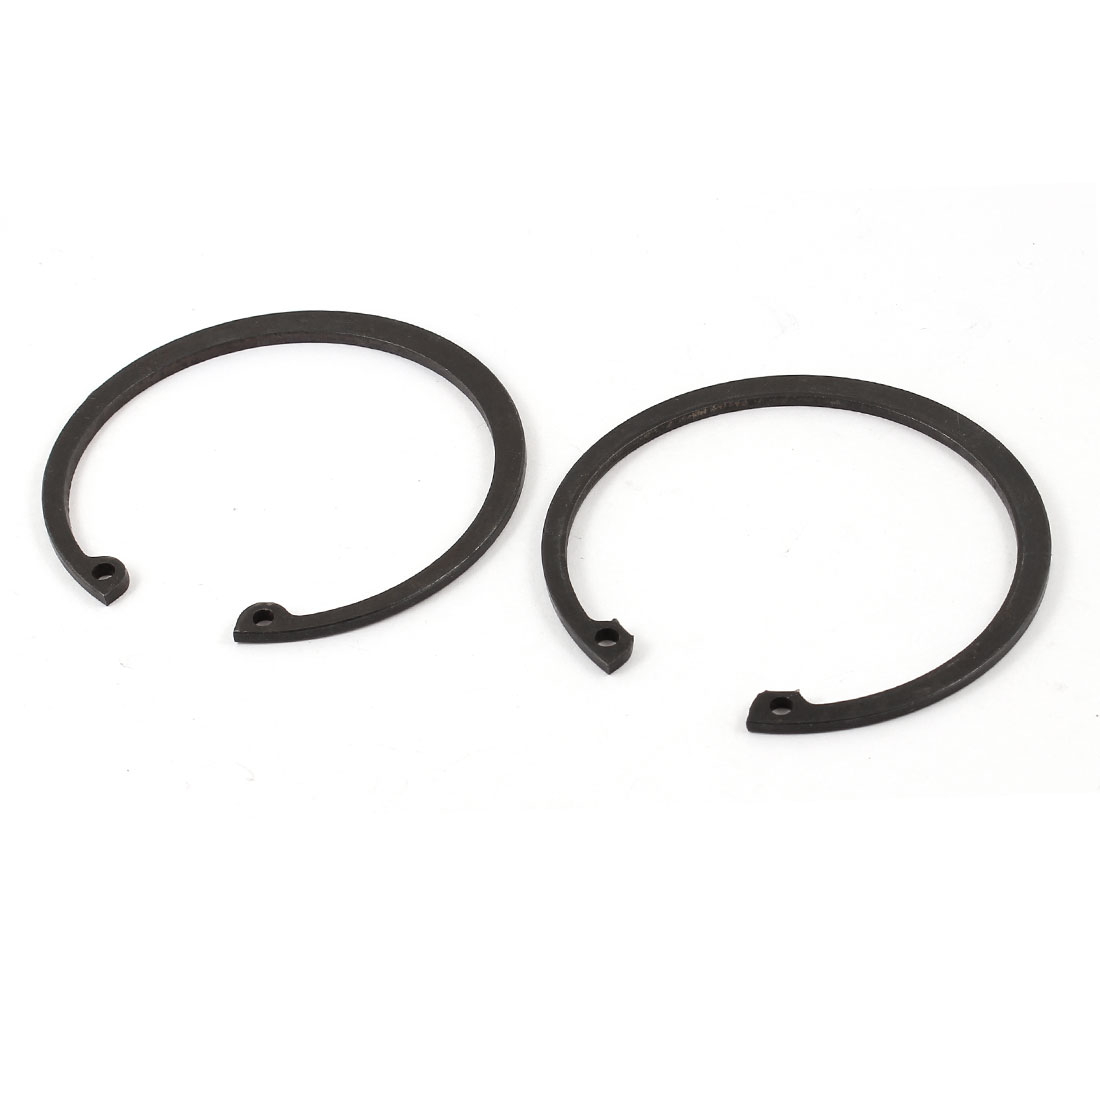 Internal Notched Retaining Rings Prospect Fastener IN325 3.25 in 5 Pieces